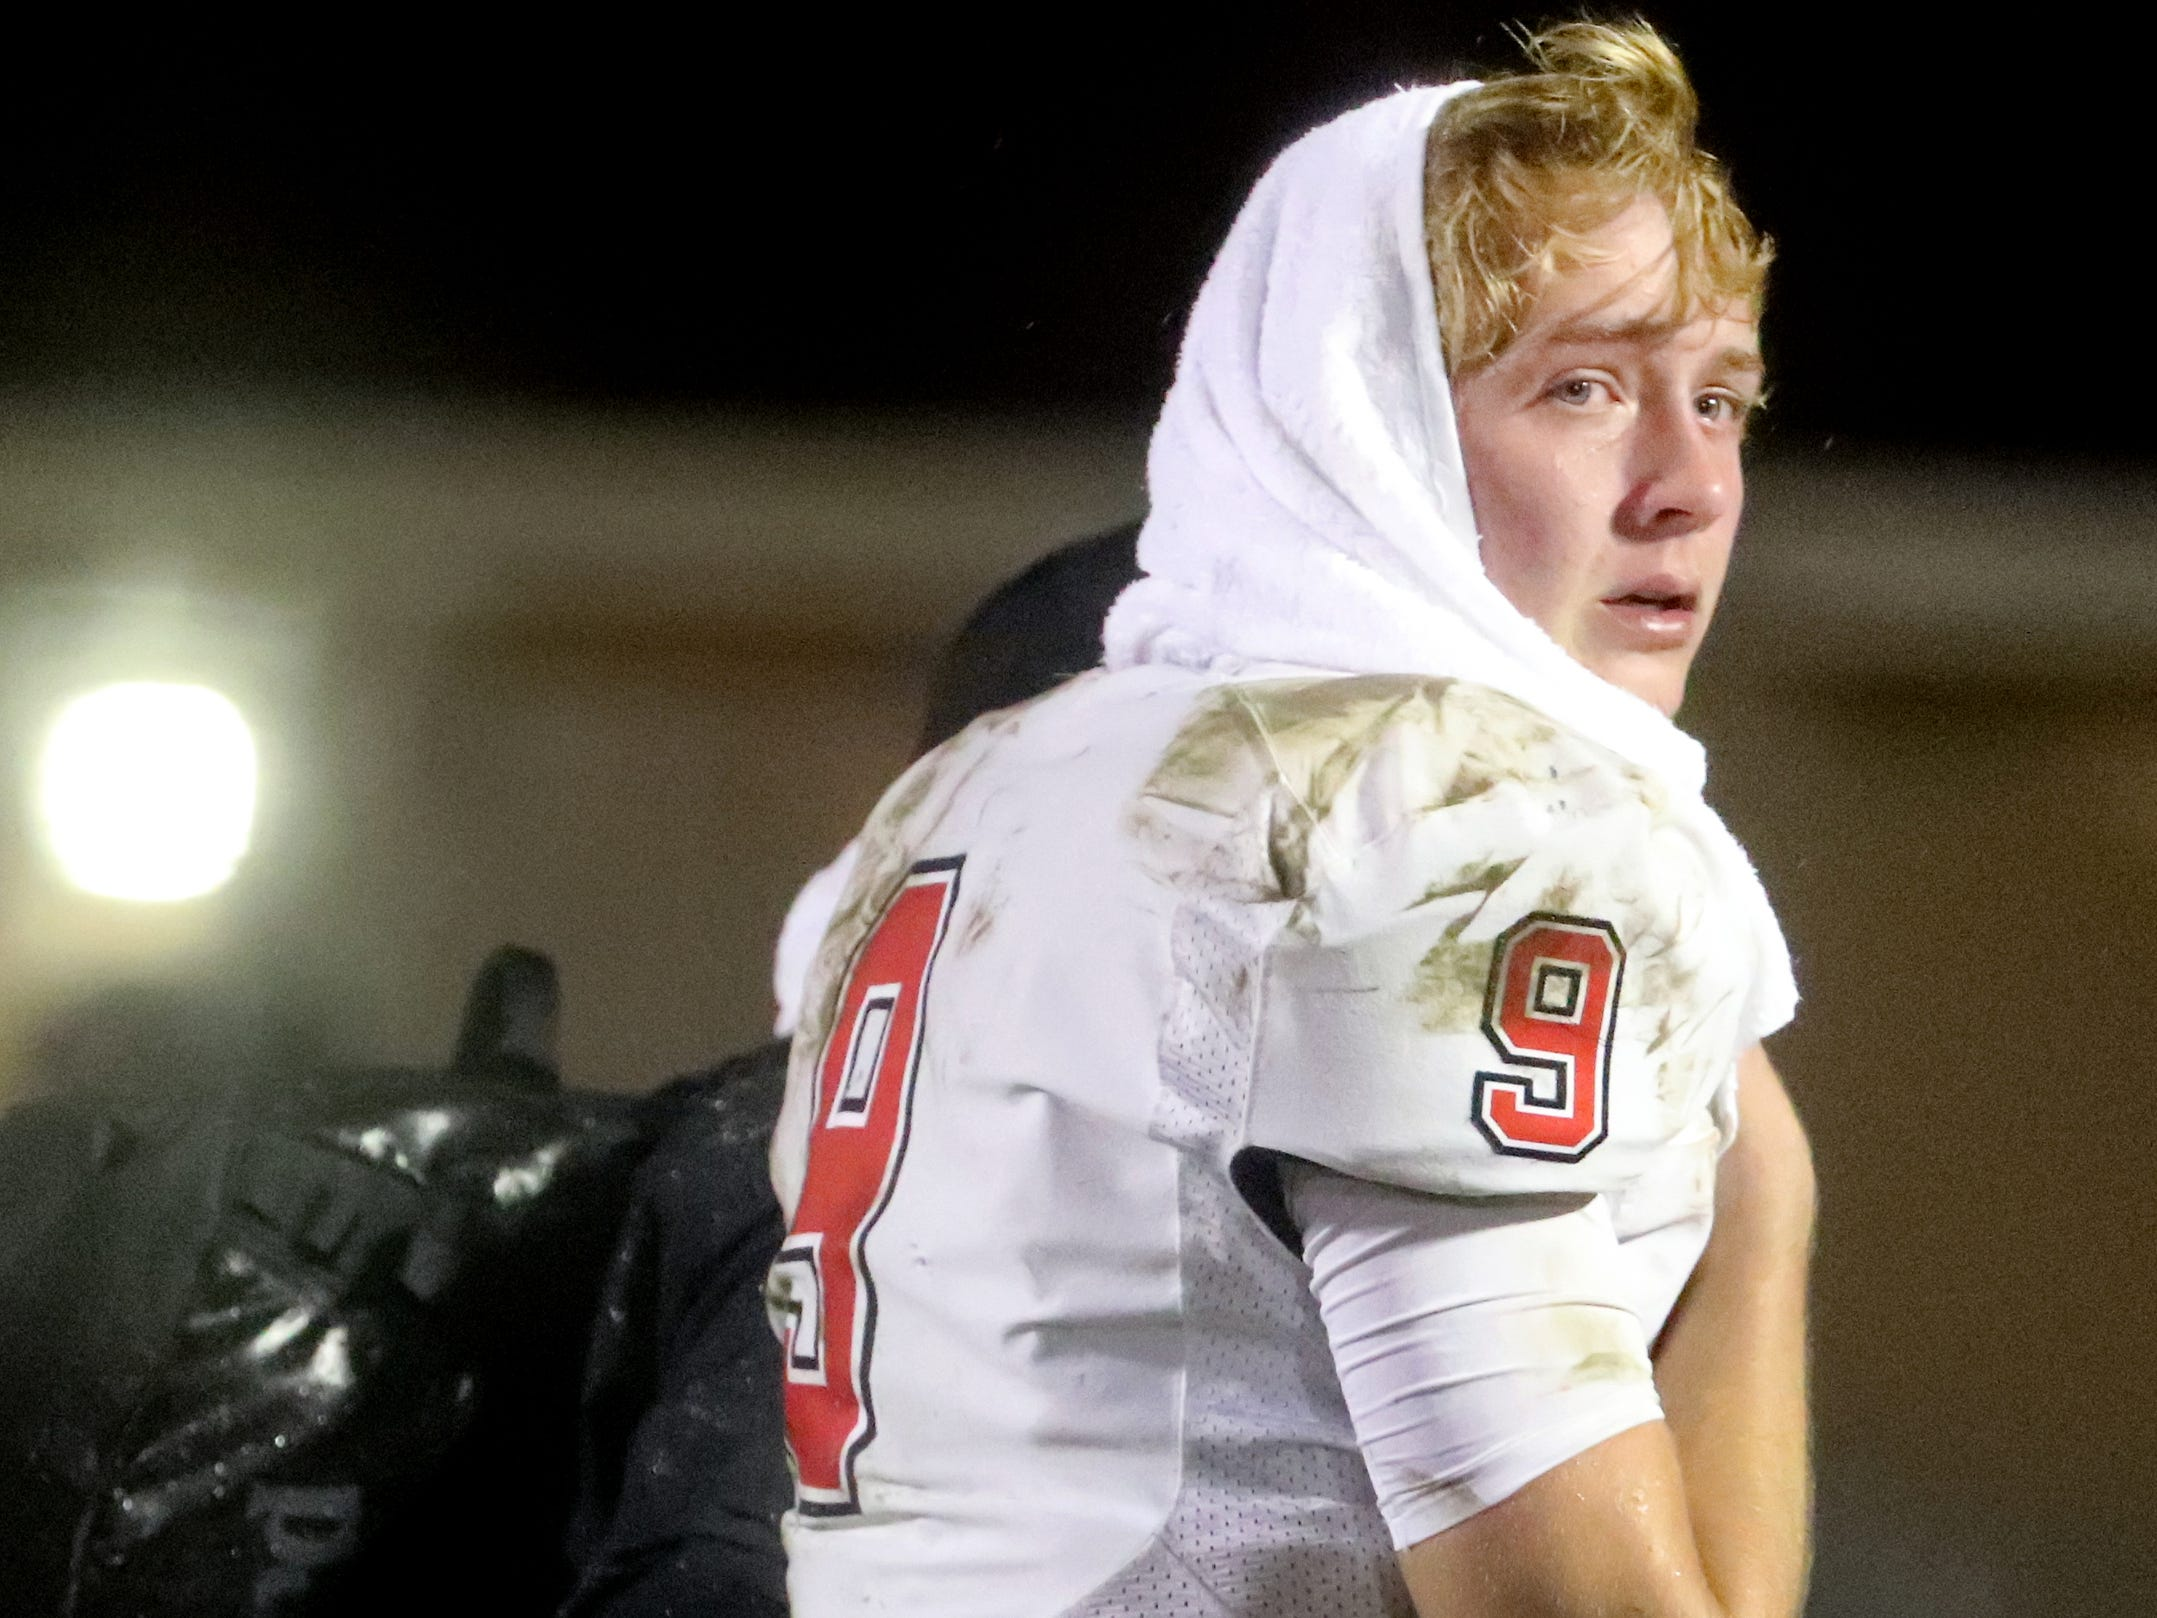 Maryville's players quarterback Cade Chambers (9) looks back as he walks off the field after losing to Oakland 38-0 in Murfreesboro, on Friday, Aug. 23 2018, during the 6A playoffs.